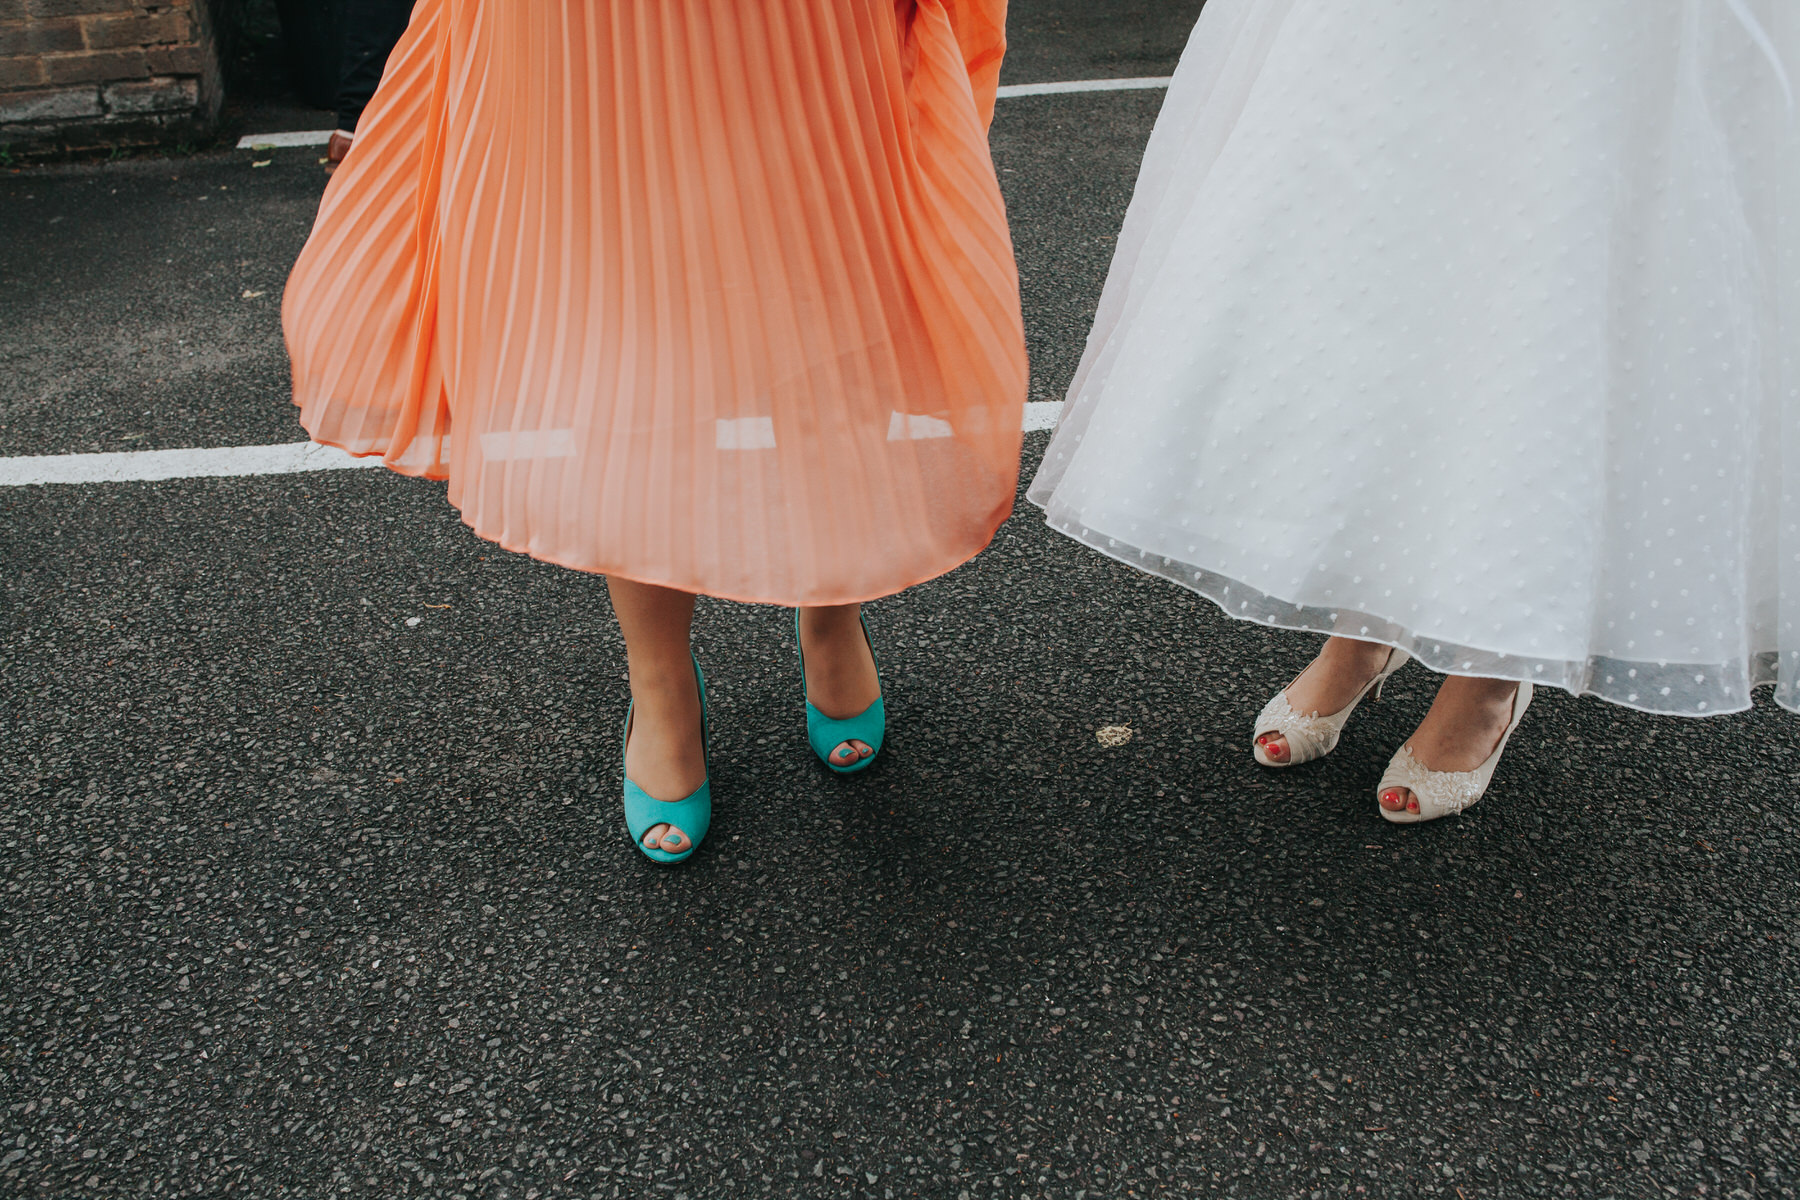 204 bride bridesmaid wedding photographers quirky shoe shot.jpg